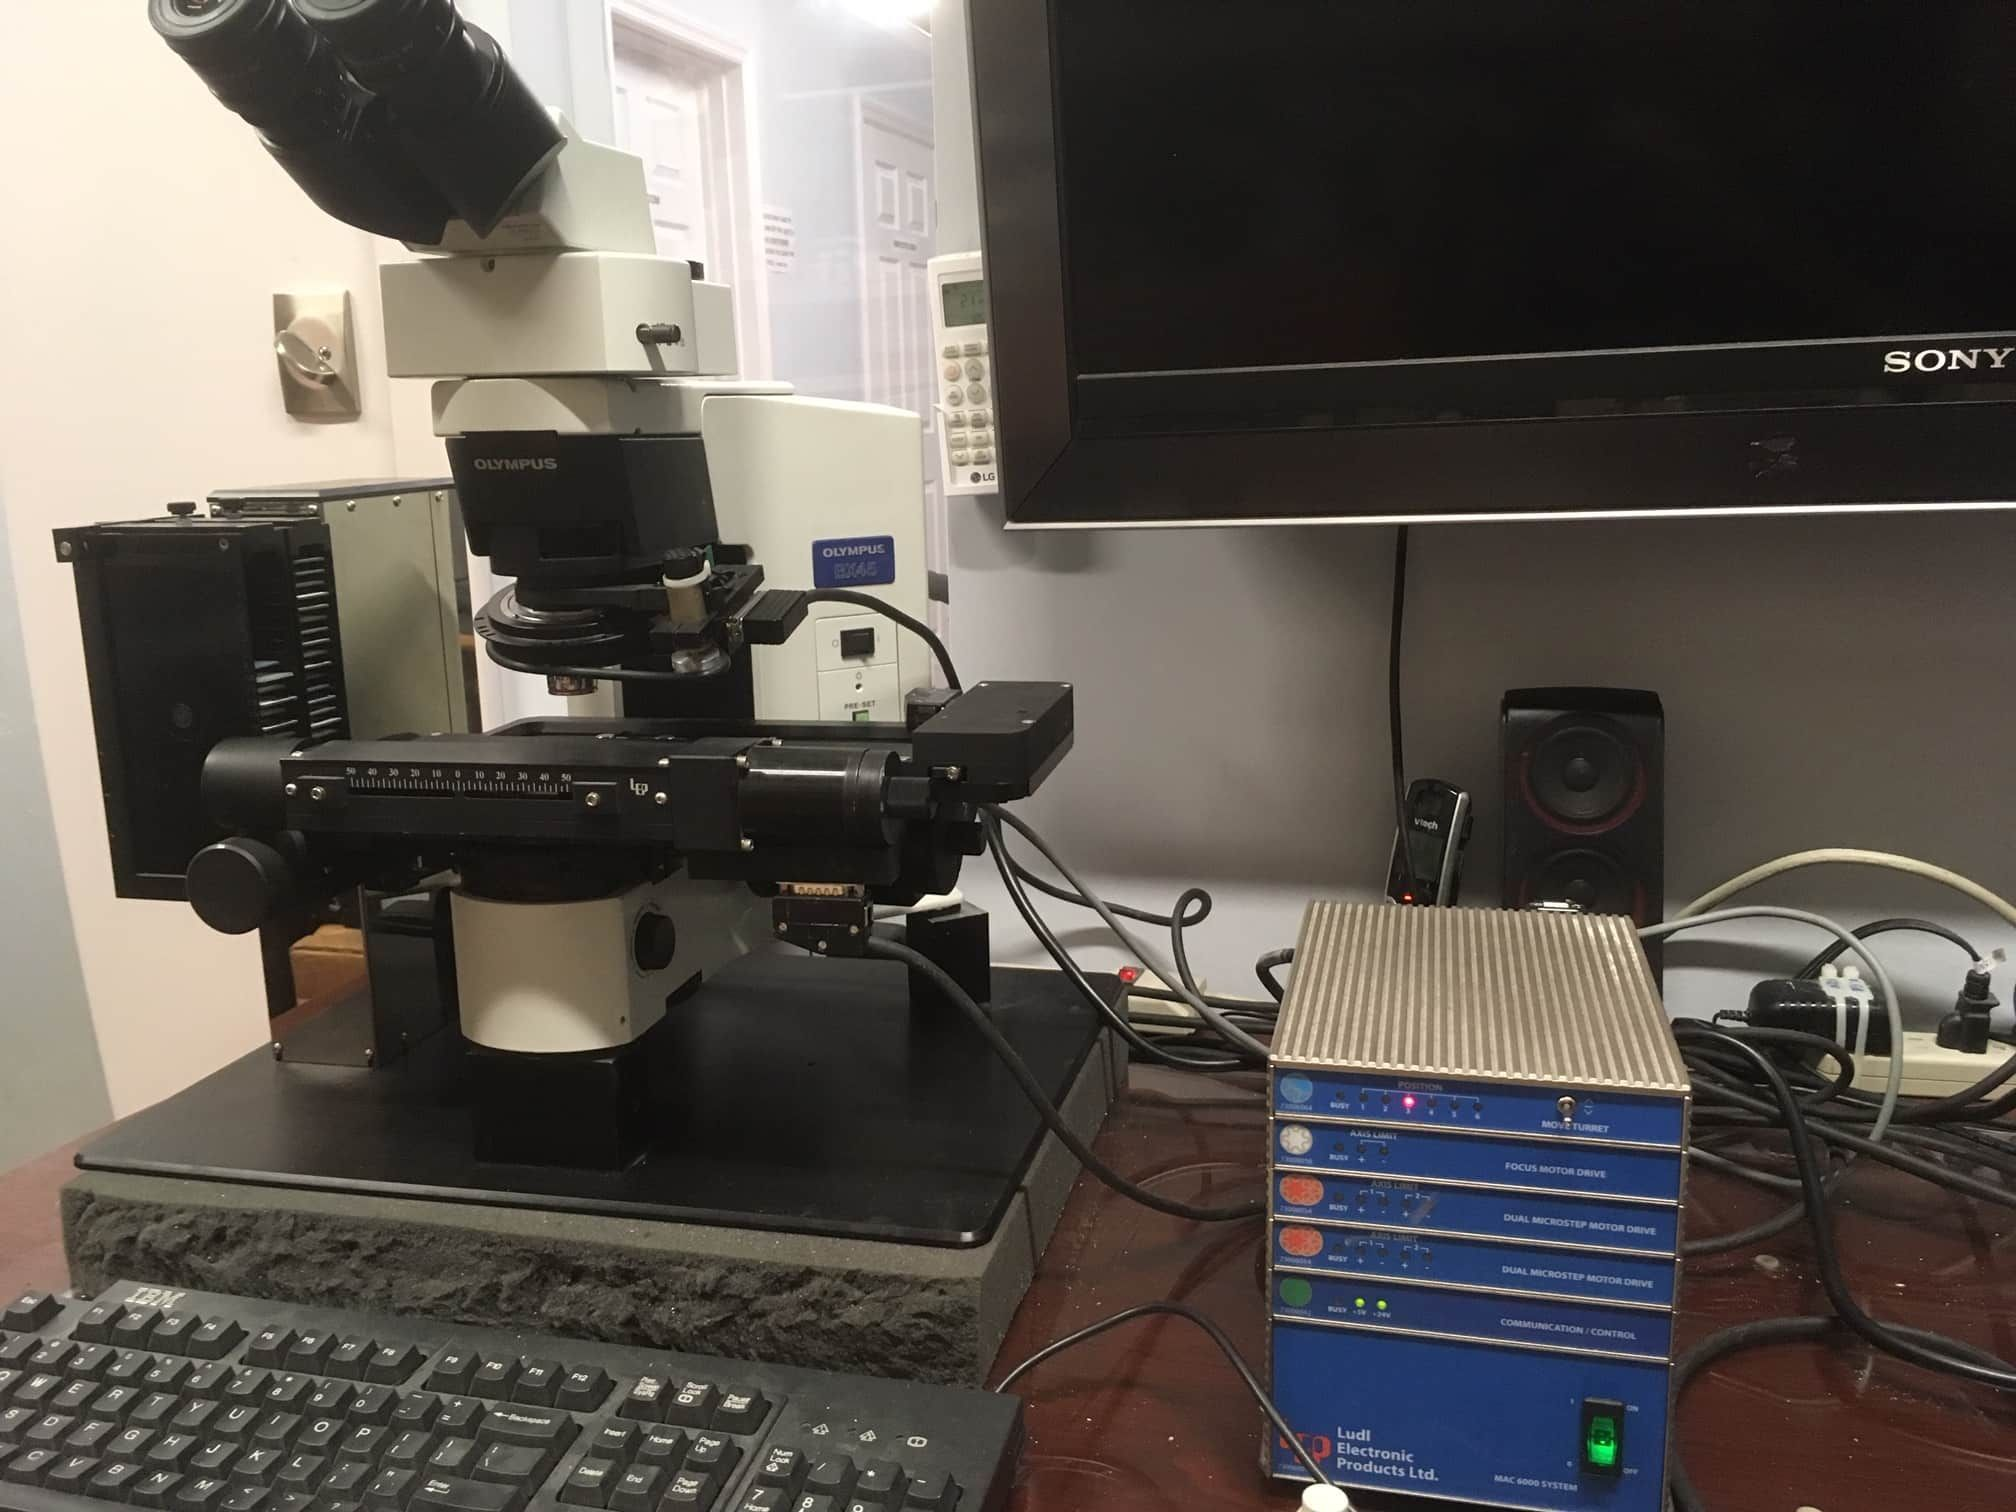 Olympus BX45 microscope system with LUDL SL50 50 specimen loader